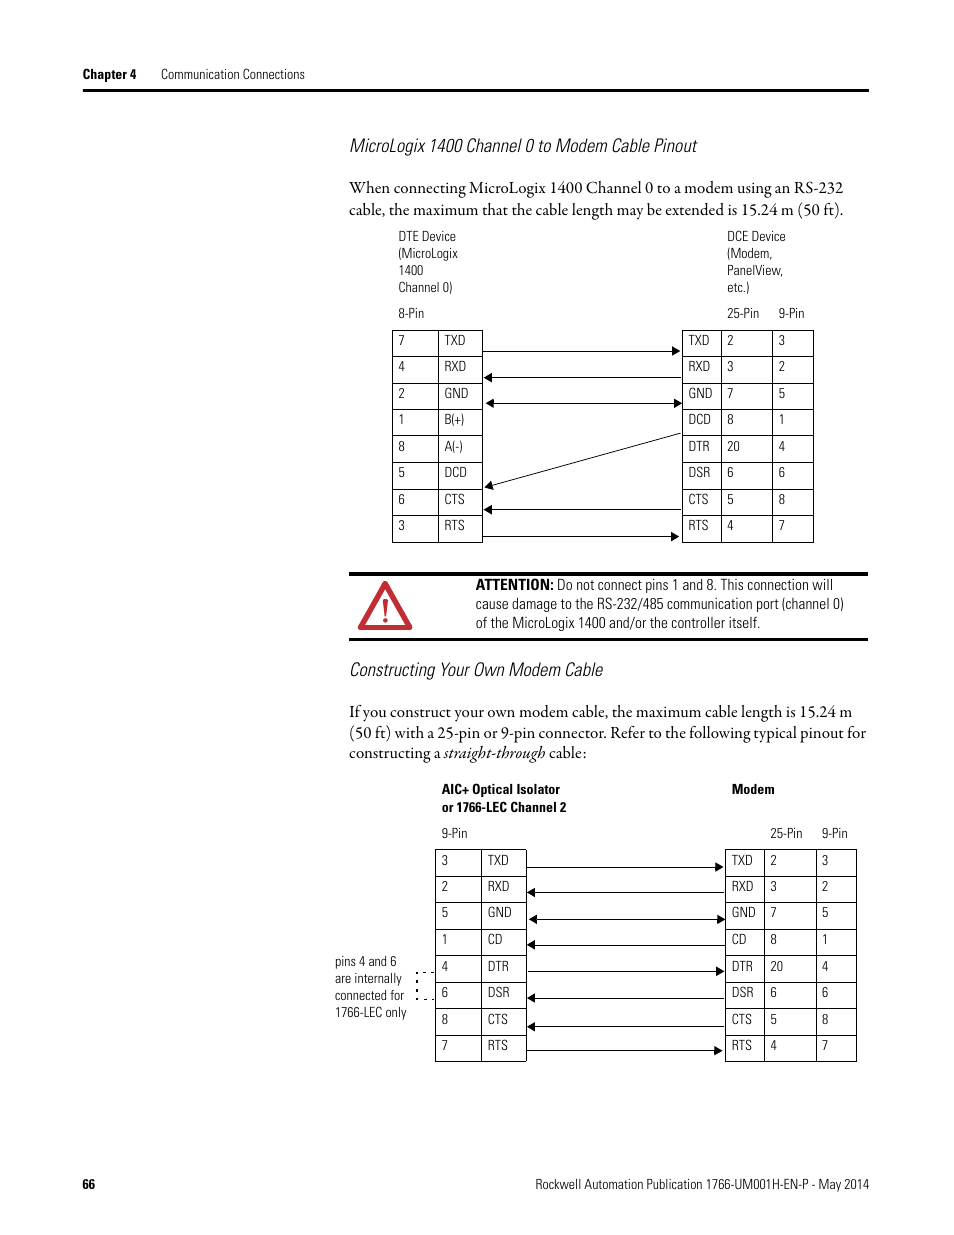 Rs 485 Diagram 2wire Auto Electrical Wiring Rs485 9 Pin Gallery